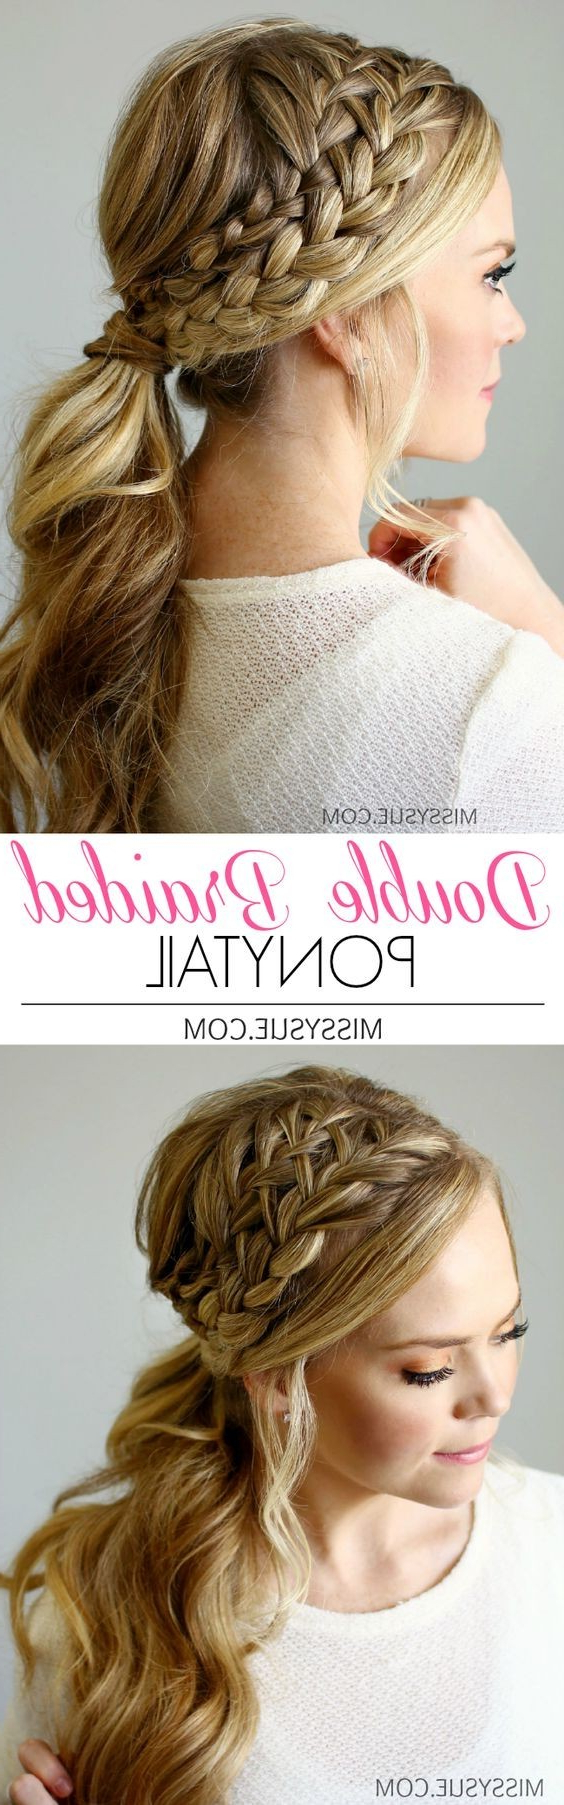 18 Cute Braided Ponytail Styles – Popular Haircuts Inside Popular Textured Side Braid And Ponytail Prom Hairstyles (View 1 of 20)